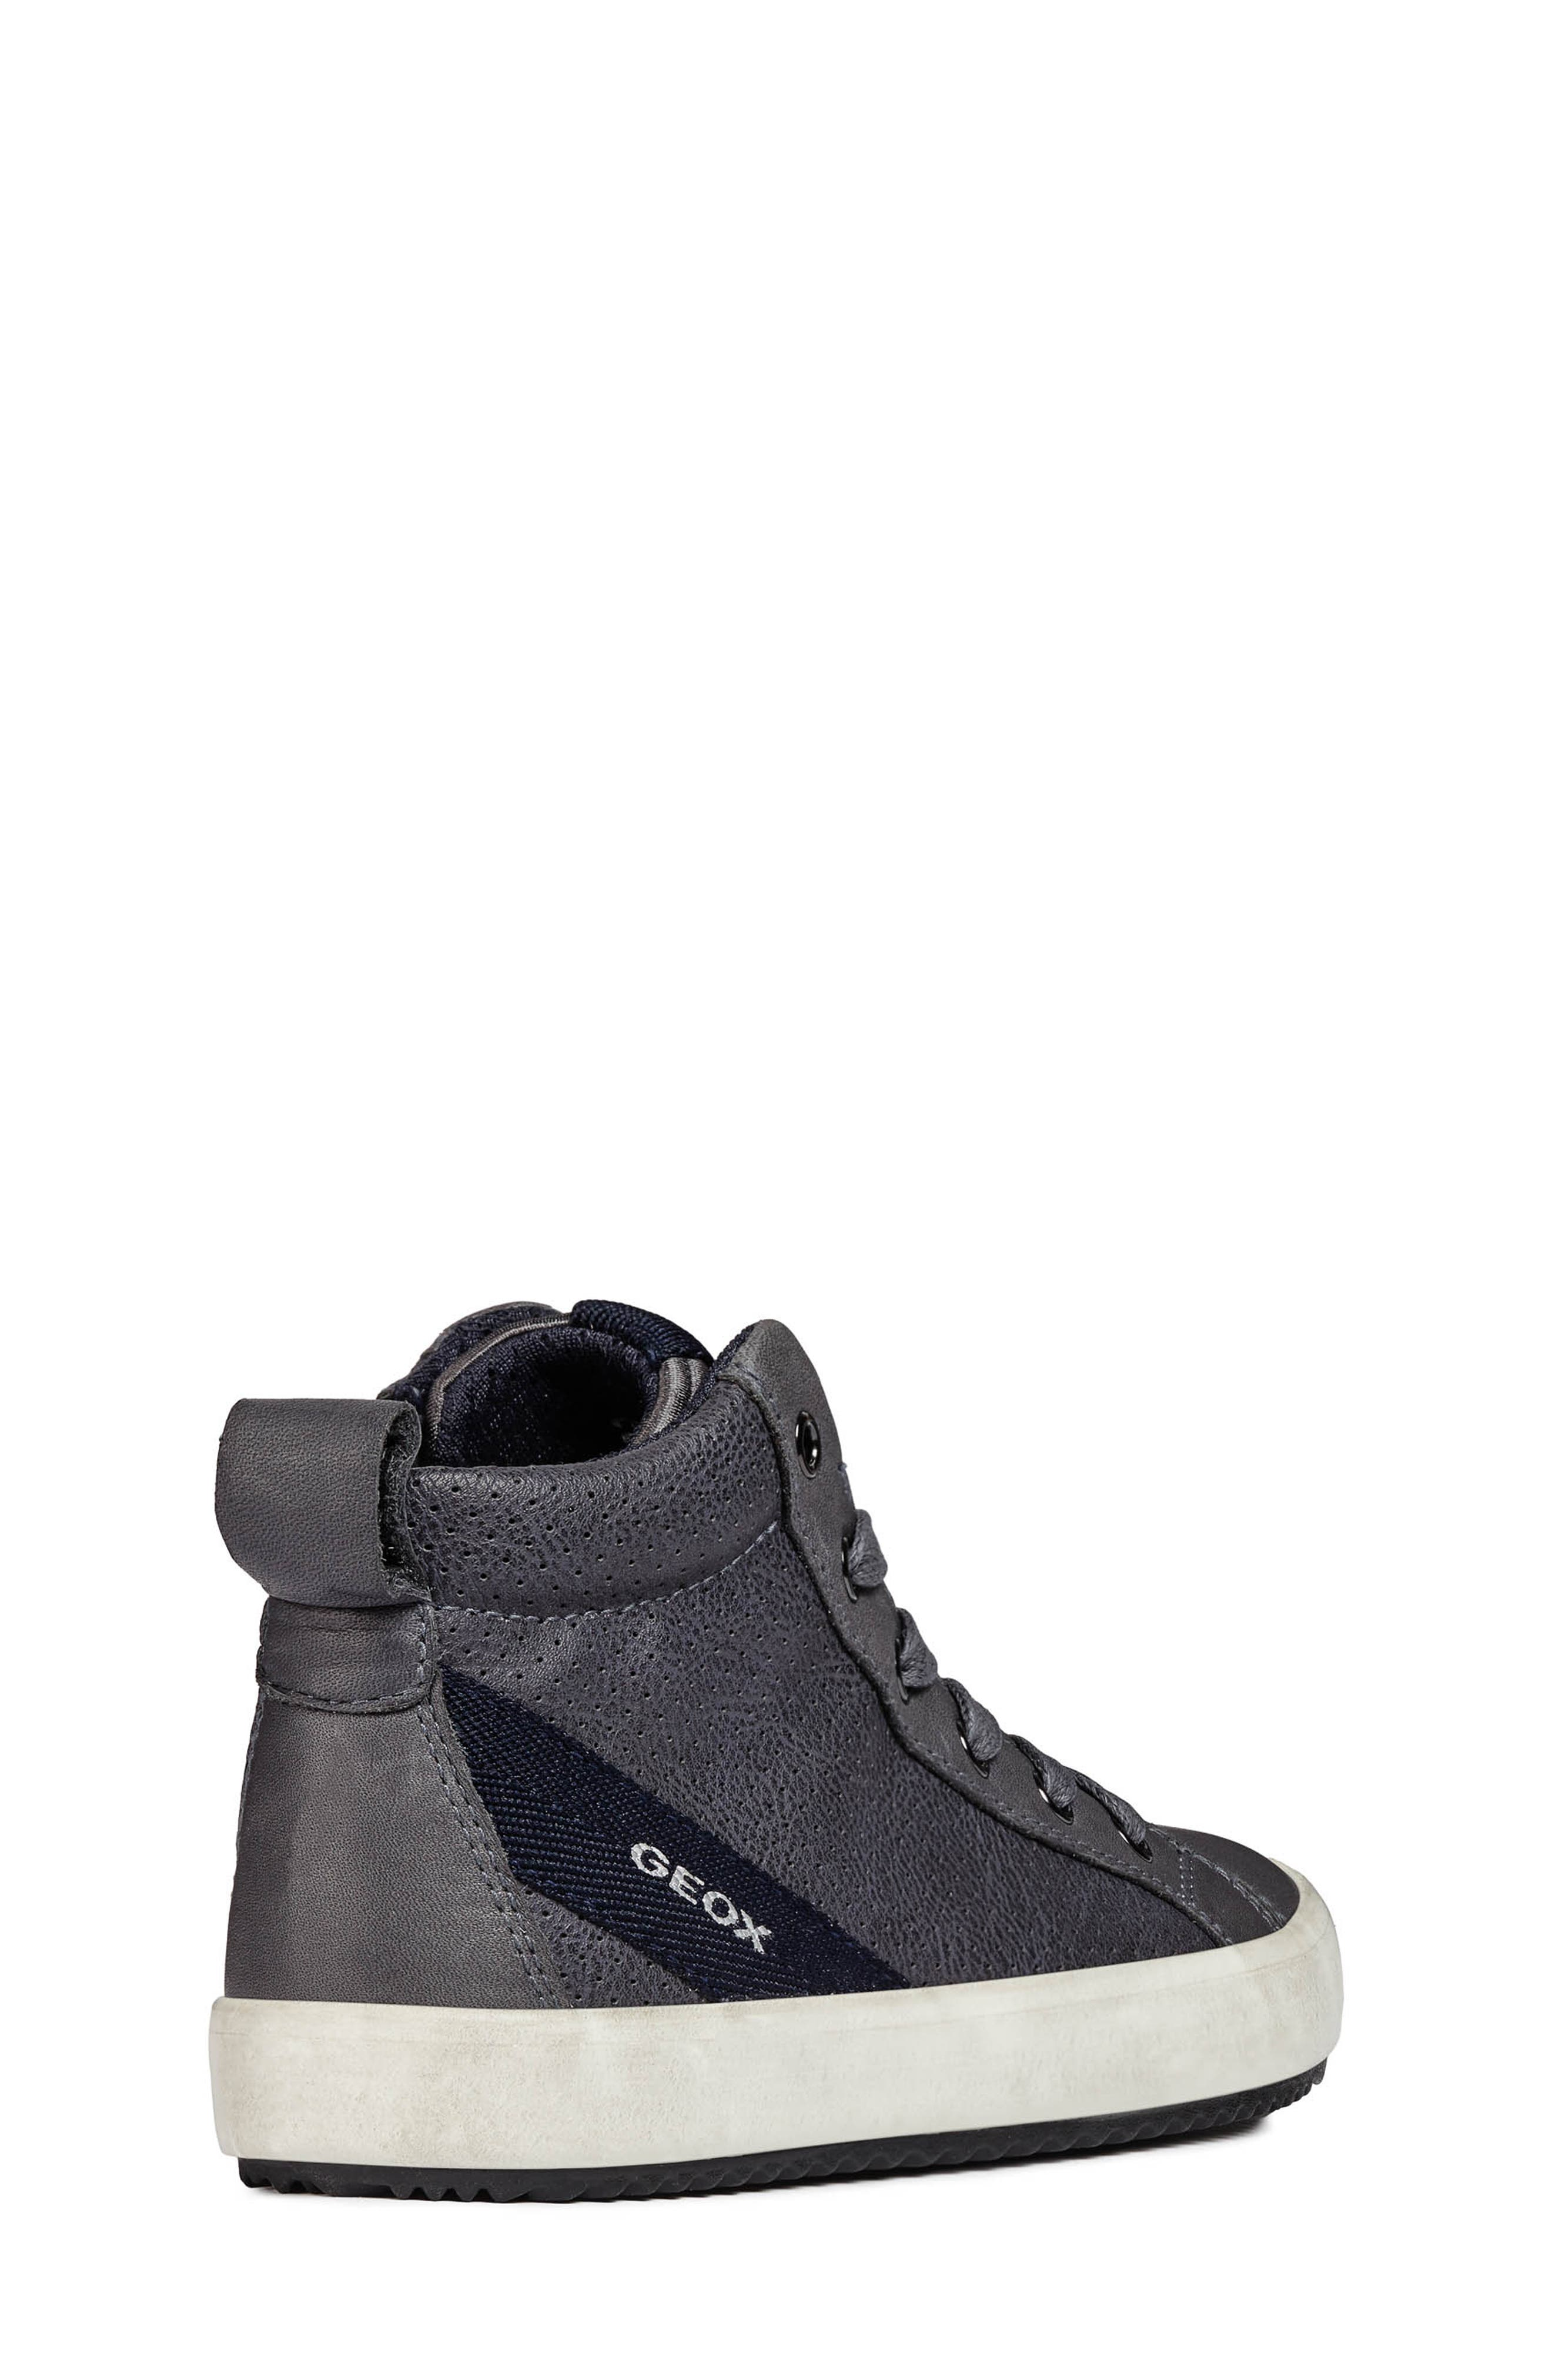 Alonisso High-Top Sneaker,                             Alternate thumbnail 7, color,                             GREY/DARK GREY